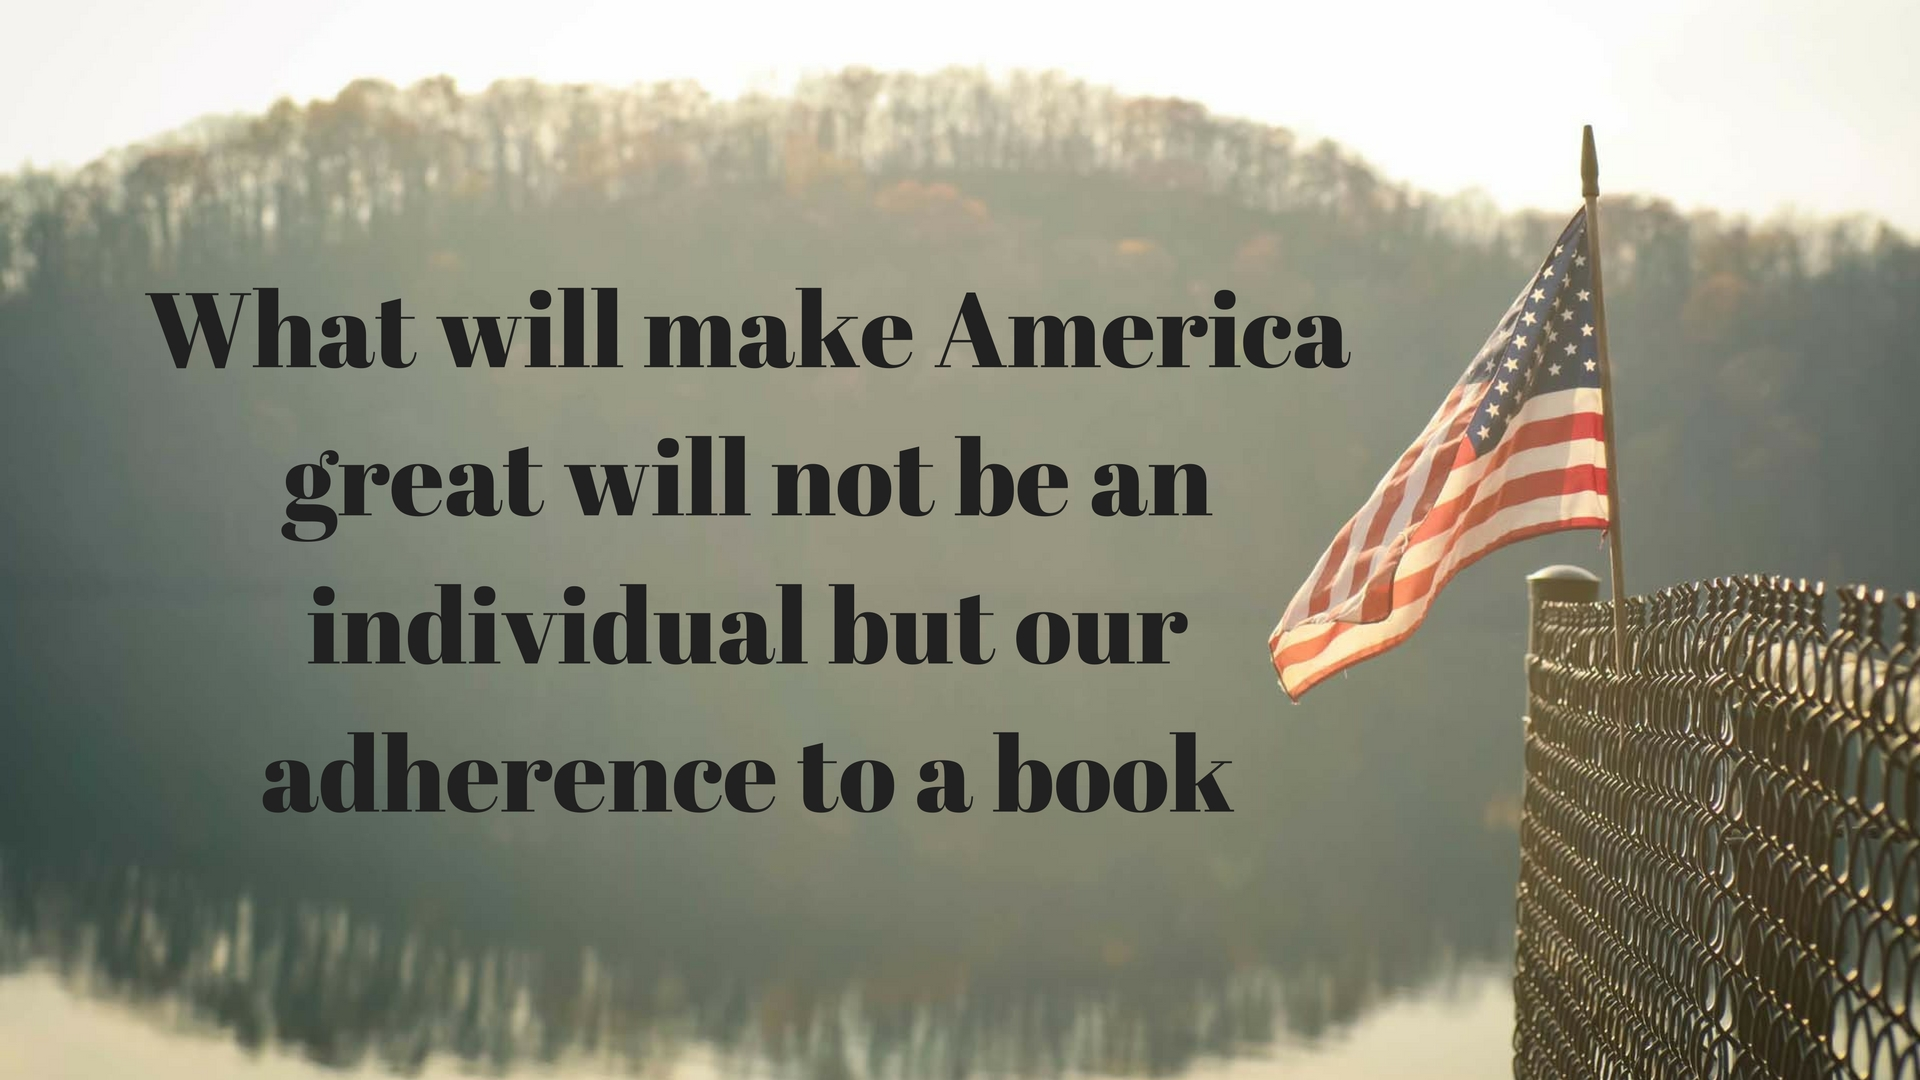 what-will-make-america-great-will-not-be-an-individual-but-our-adherence-to-a-book